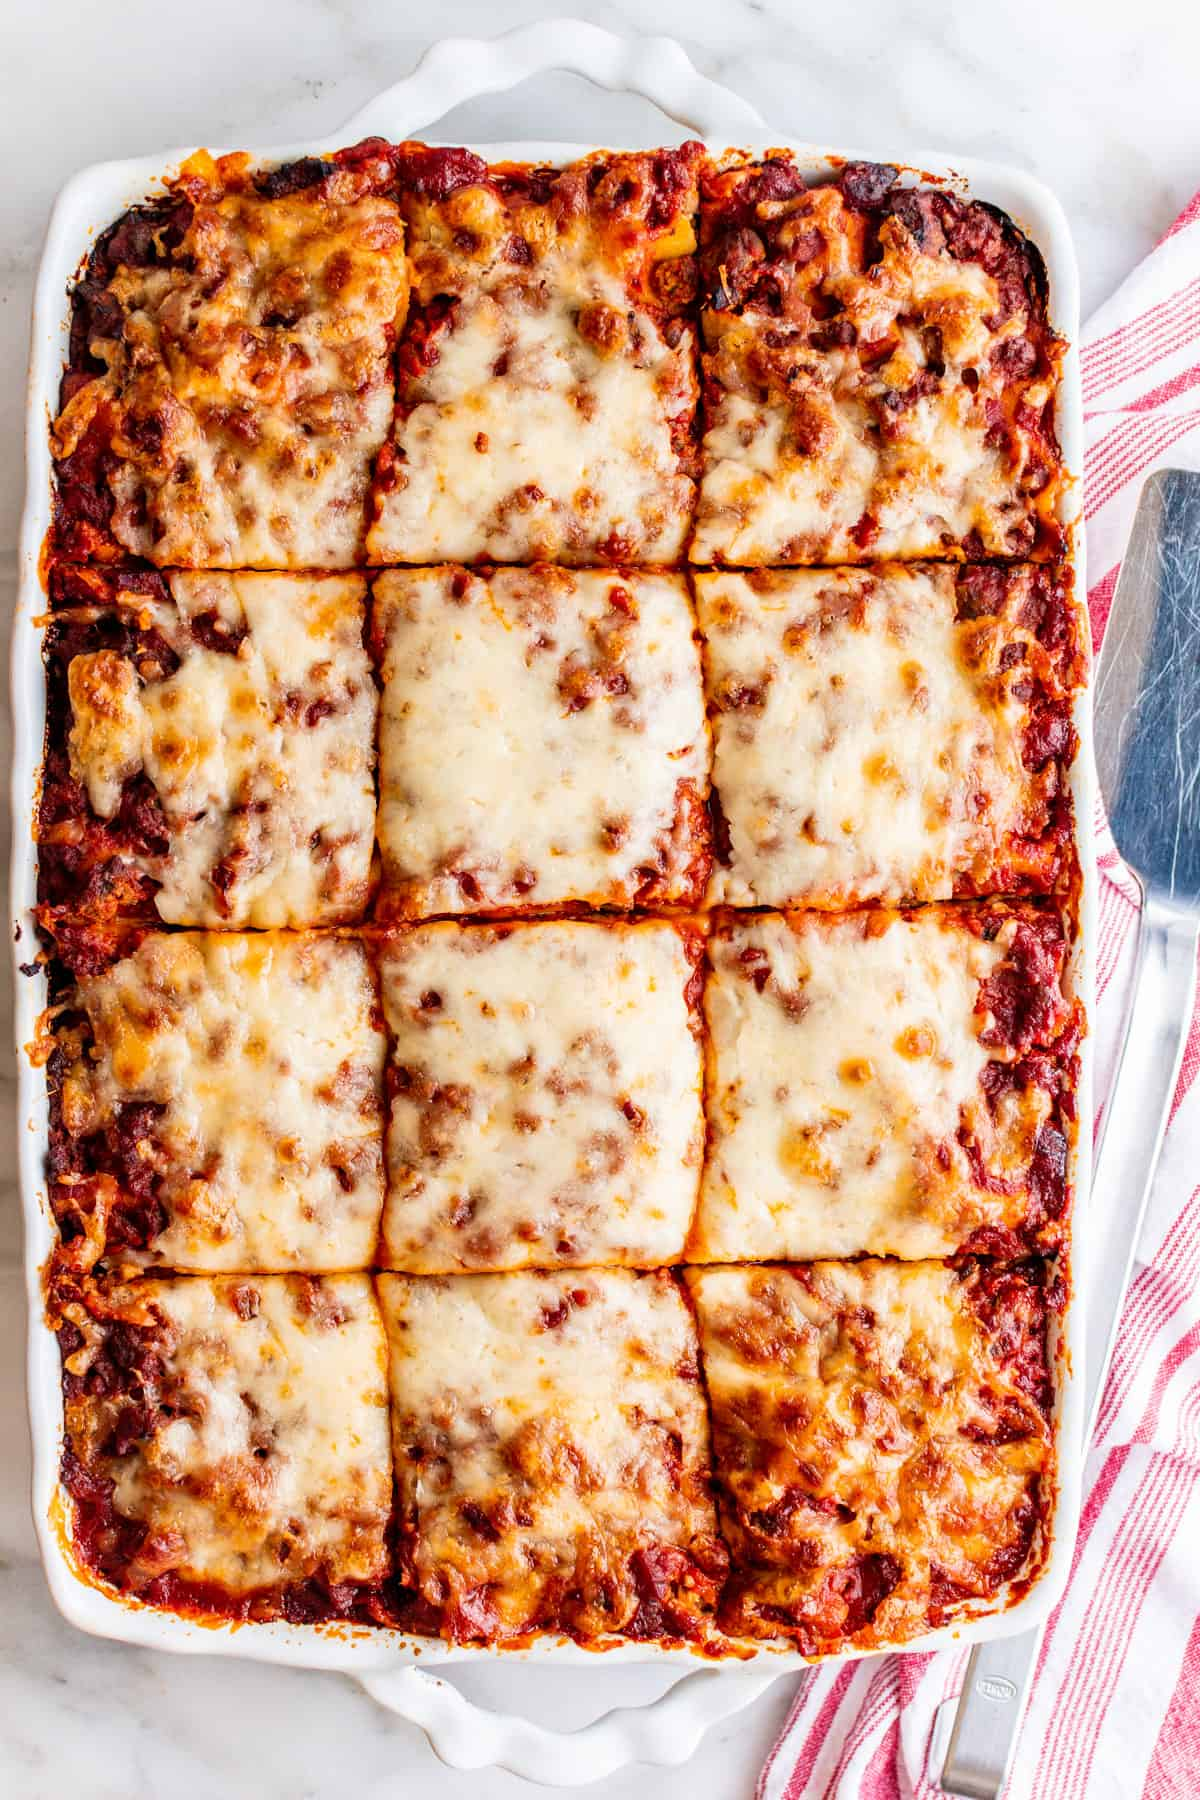 Lasagna with Cottage Cheese in a baking dish cut into 12 pieces with a stainless spatula and red striped kitchen towel beside.